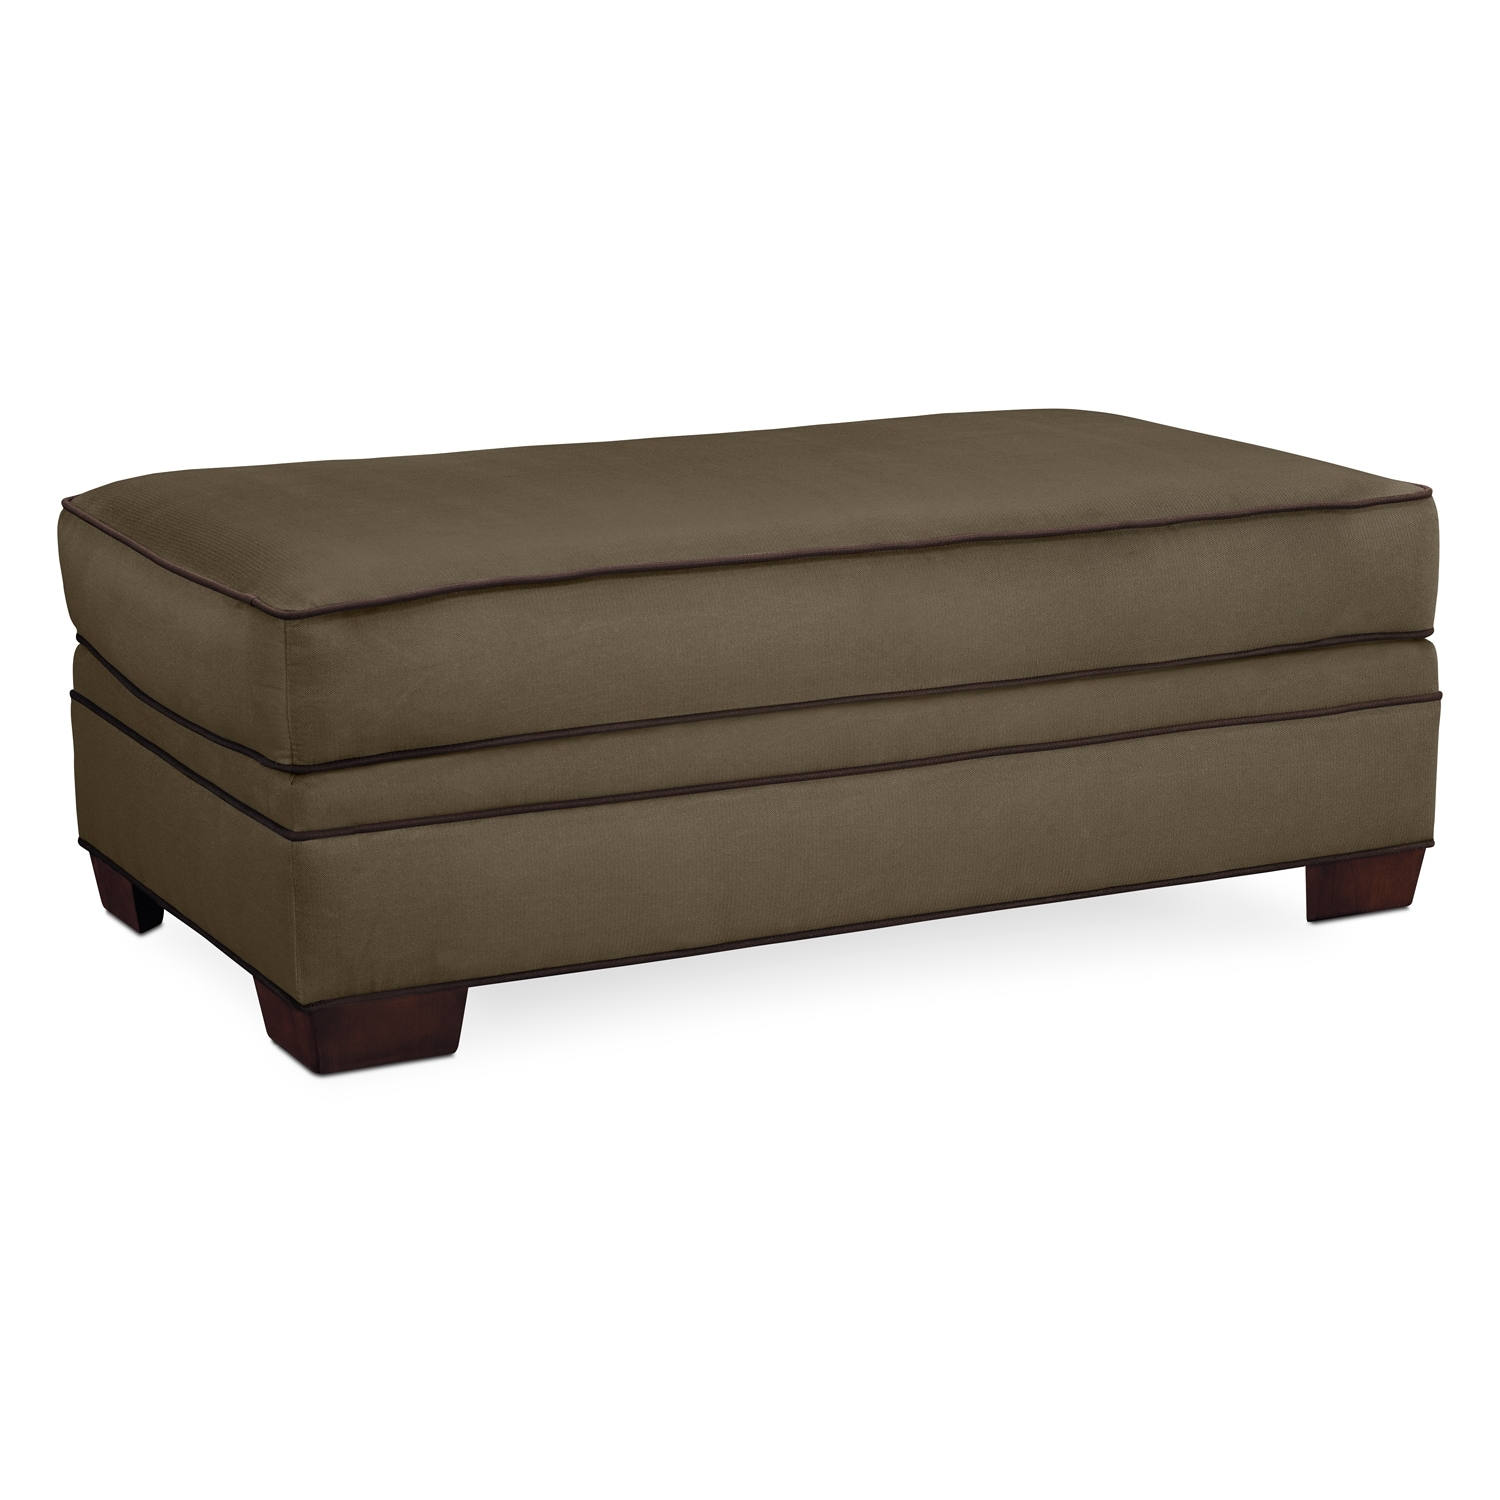 Living Room Furniture - Strauss Olive Ottoman